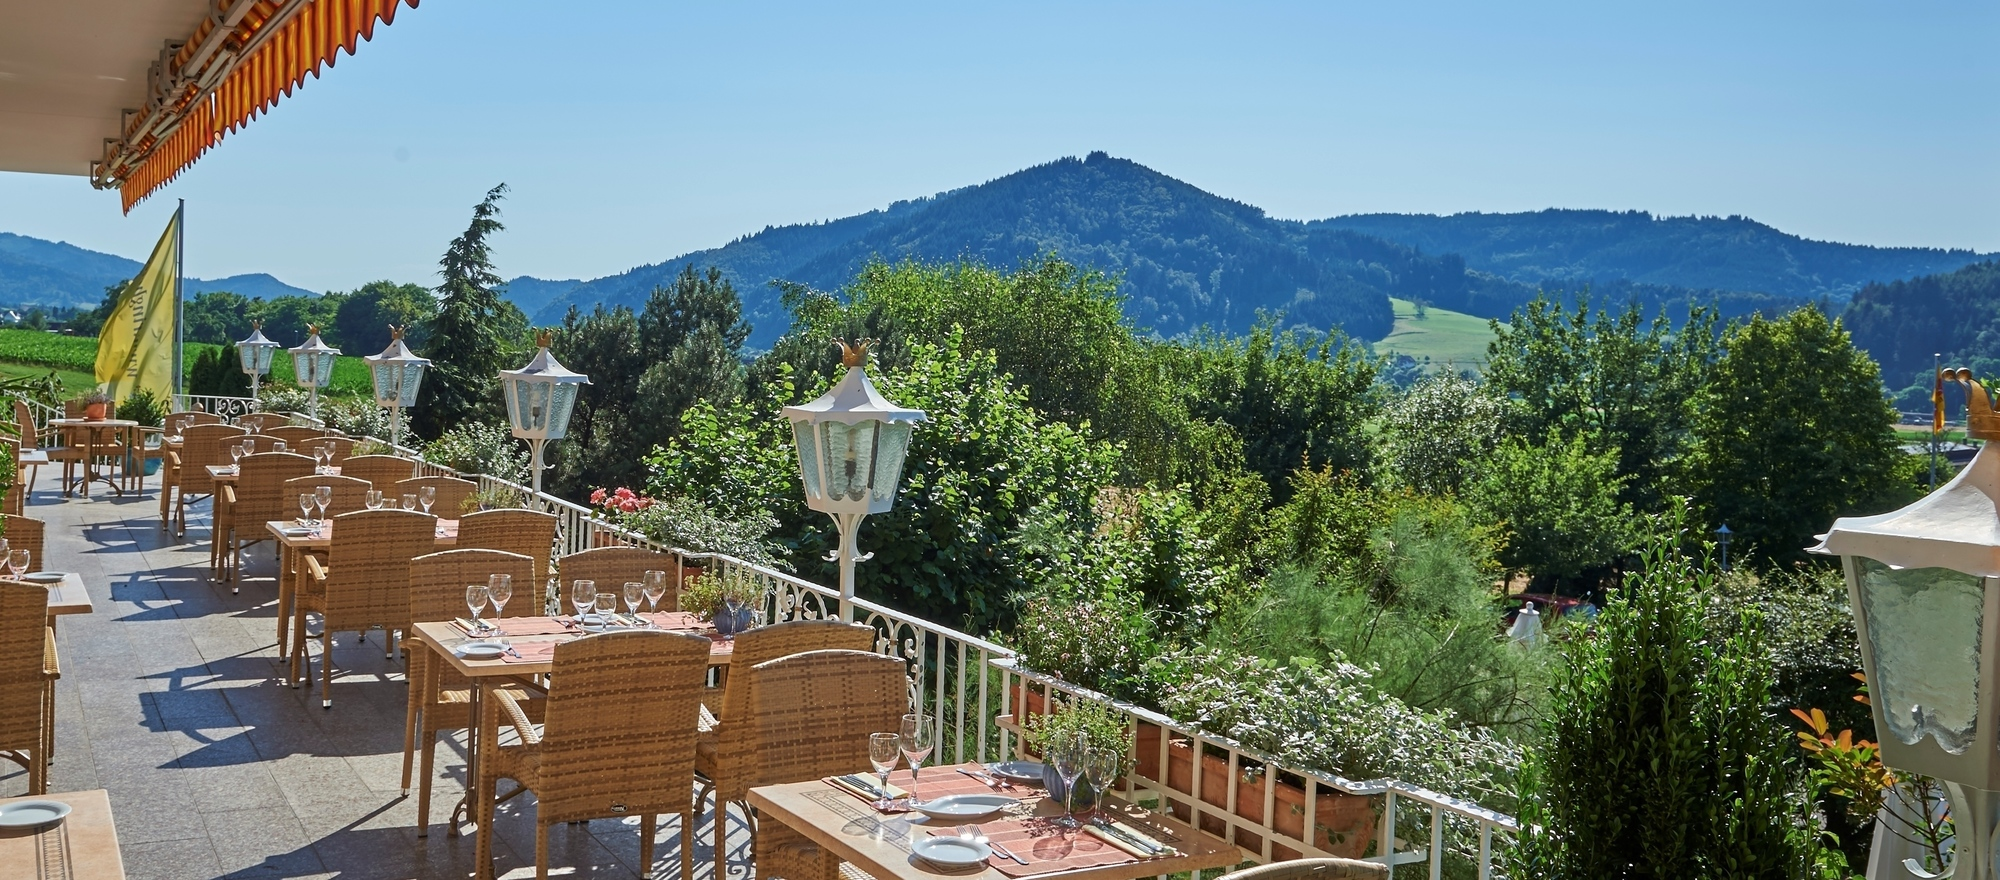 Terrace of the Ringhotel Schwarzwald Hotel Silberkönig in Gutach-Bleibach, 4-stars hotel in the Black Forest